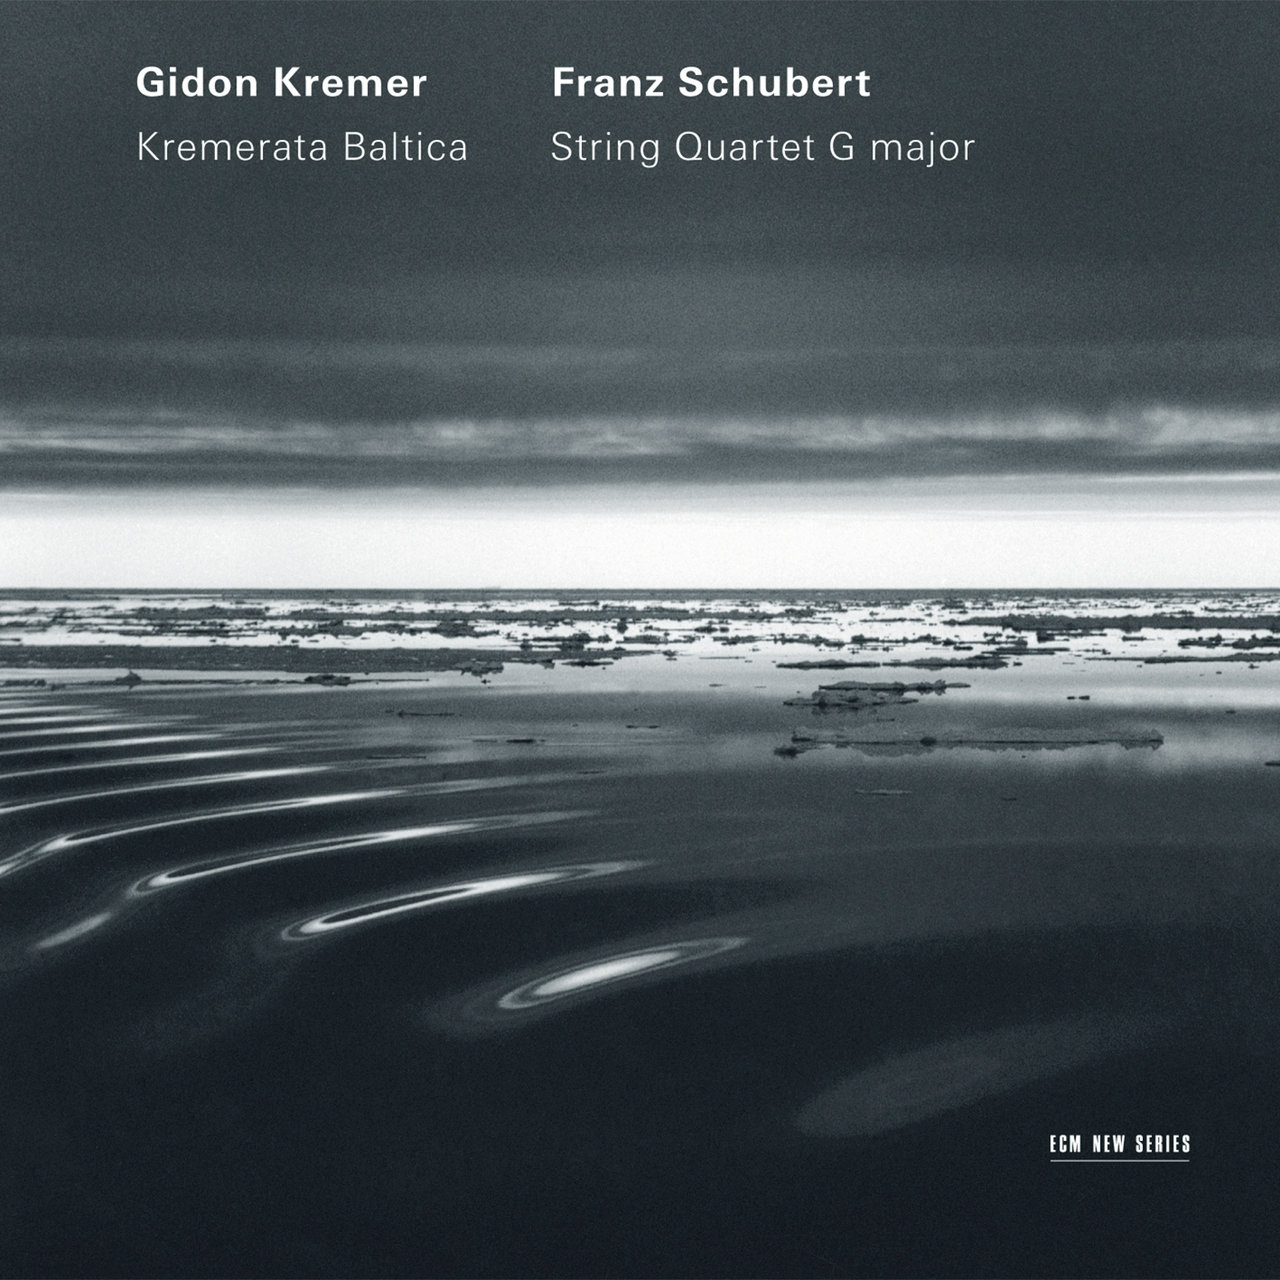 Schubert: String Quartet G Major